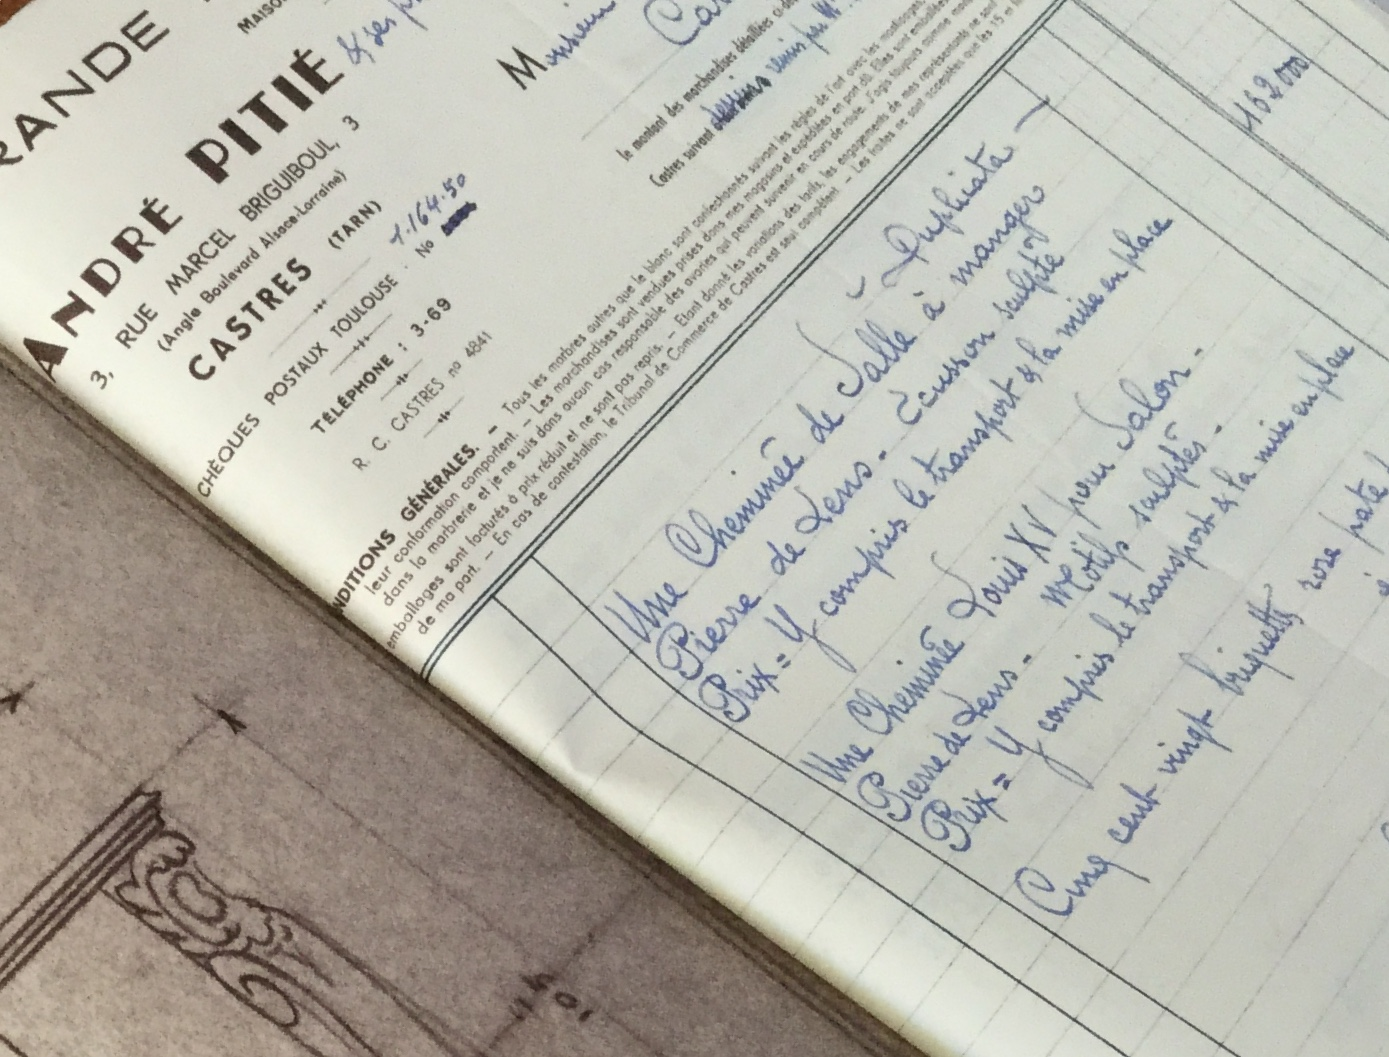 1958 original receipt for marble fireplace from Marbrerie Pitie in Castres